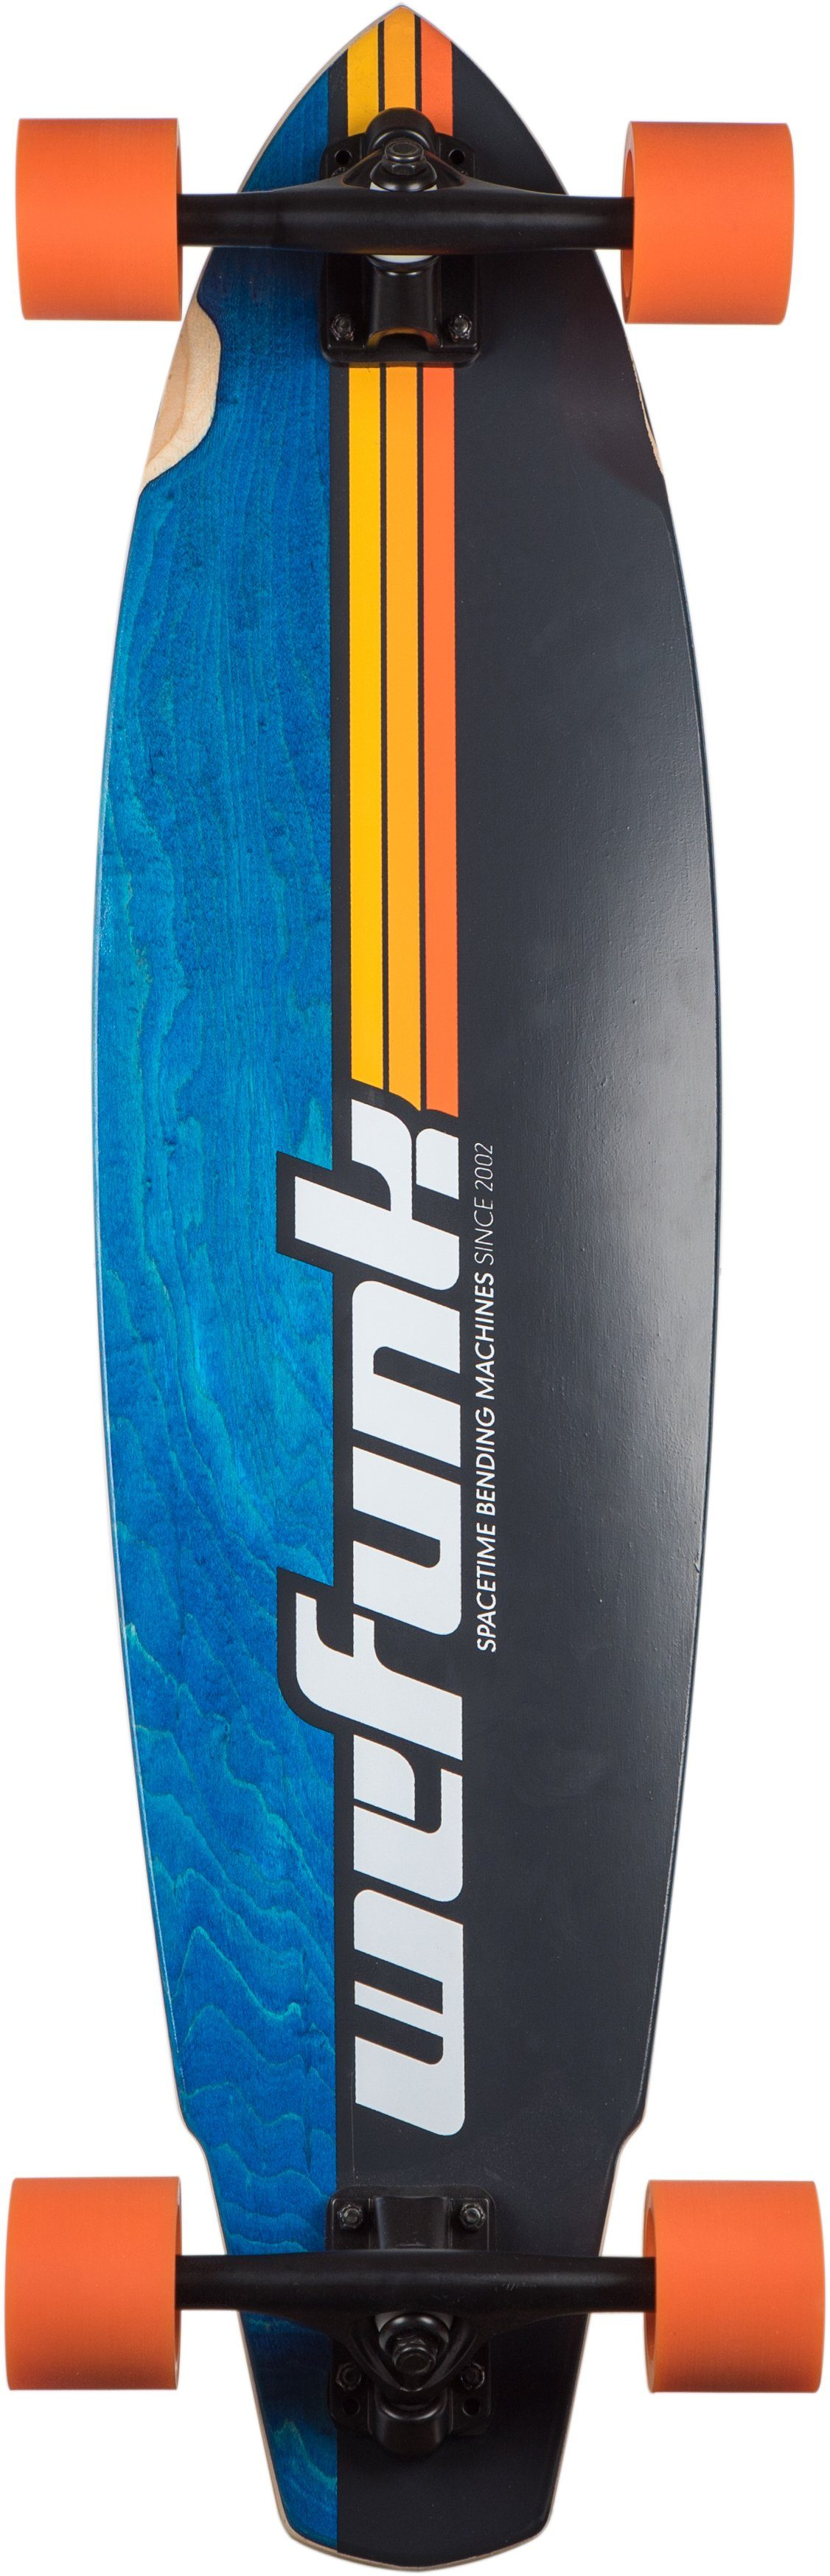 wefunk Longboard, »Stripes- Speed Carver«